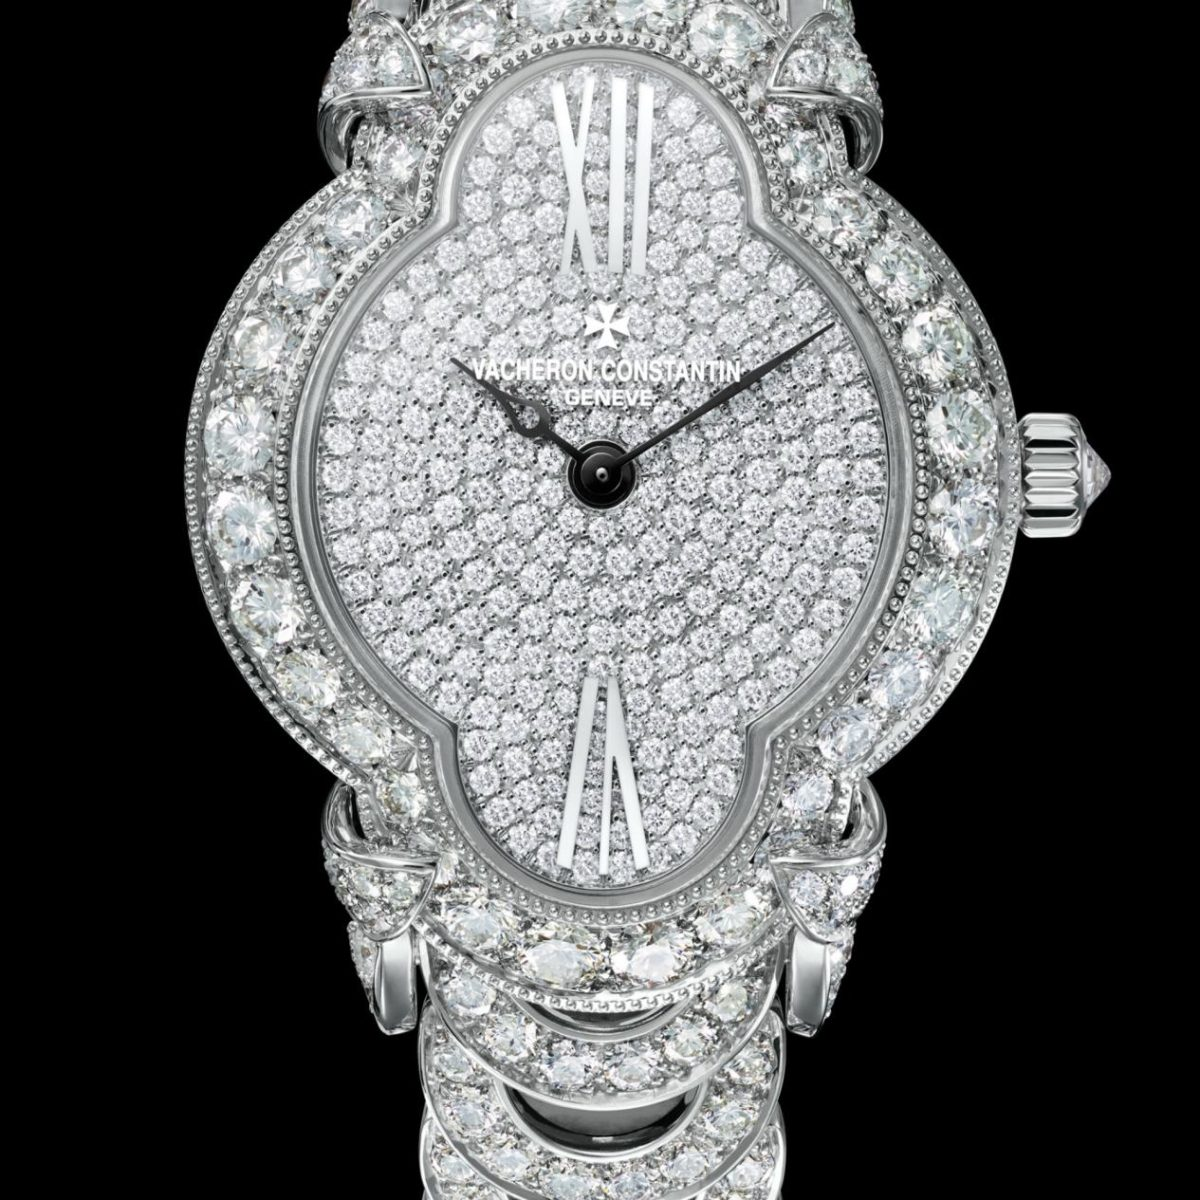 cf35293b869 High End Women s Watches  9 Expensive Timepieces from Top Brands